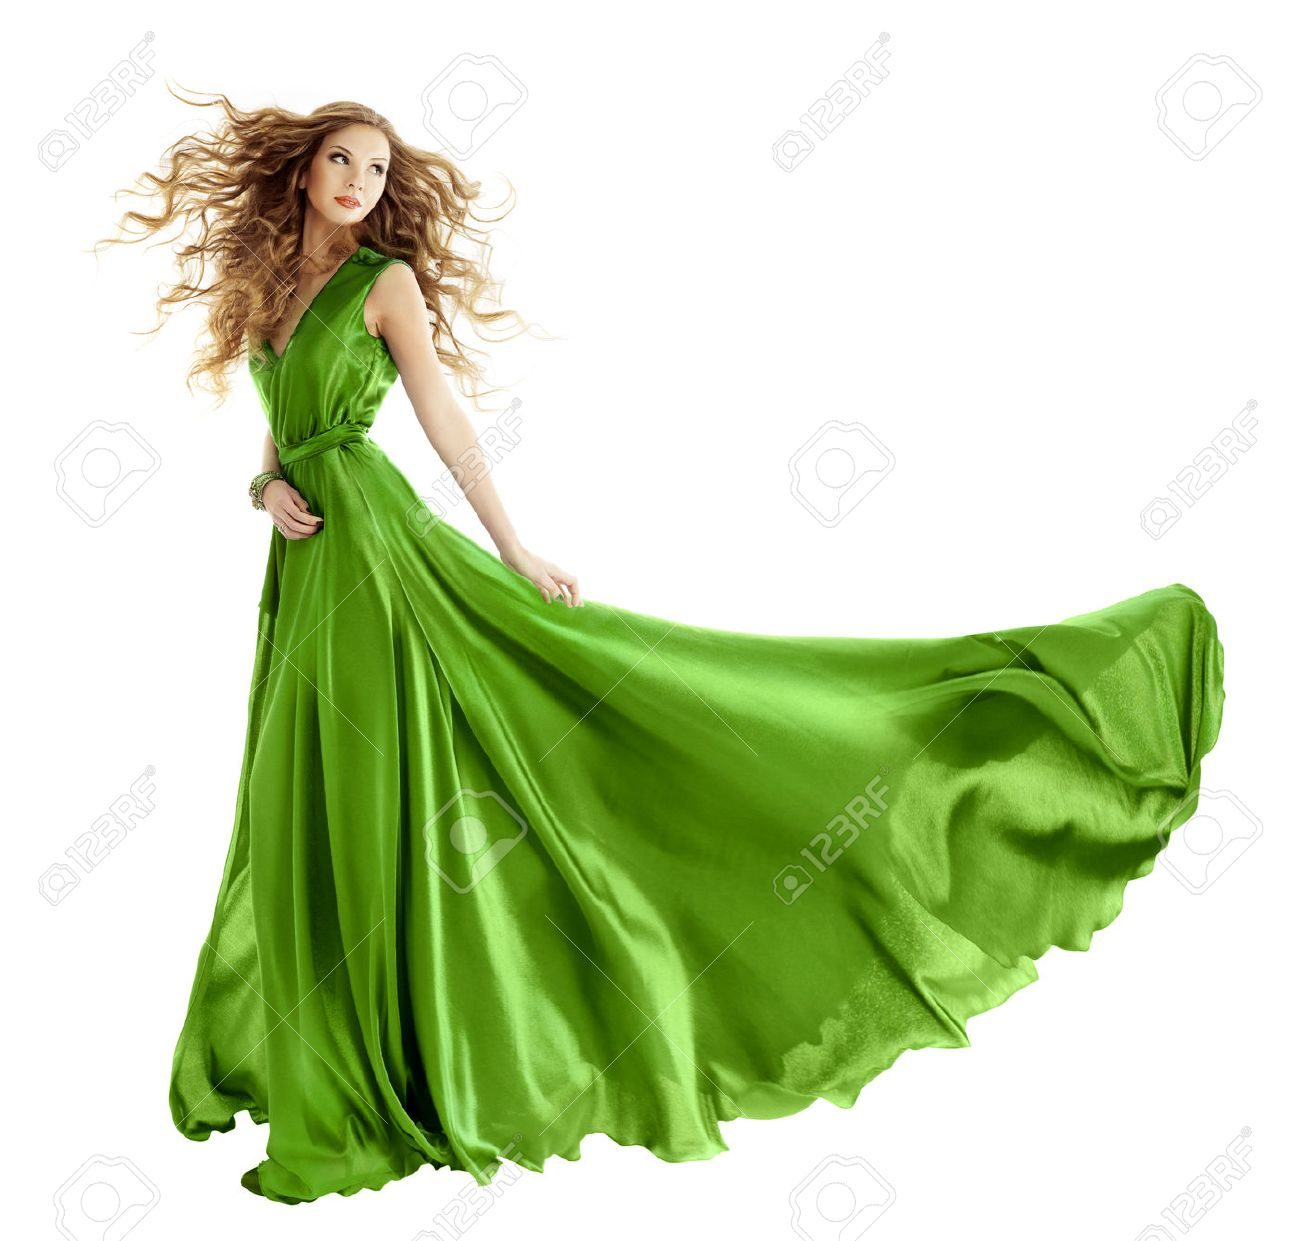 ae09ae886 Woman In Beauty Fashion Green Gown